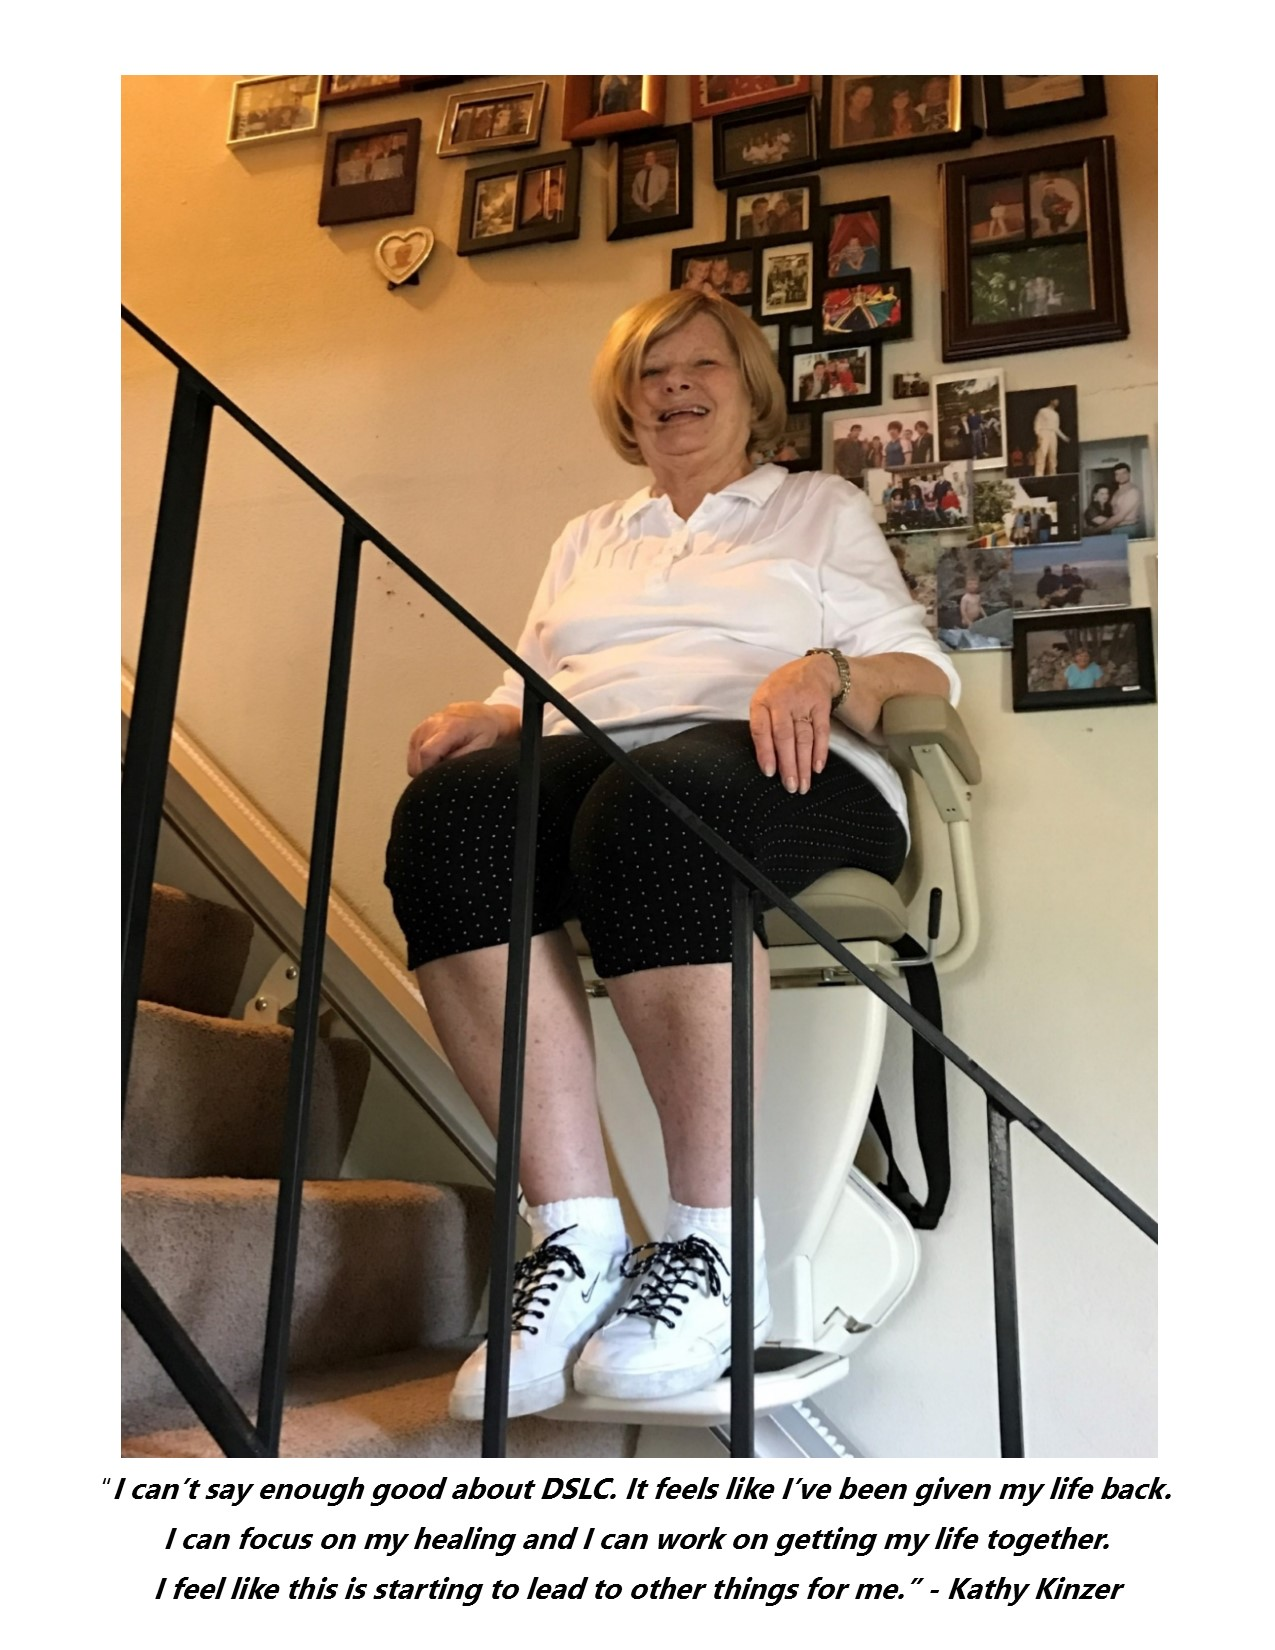 DSLC client Kathy Kinzer showcasing her new stair lift